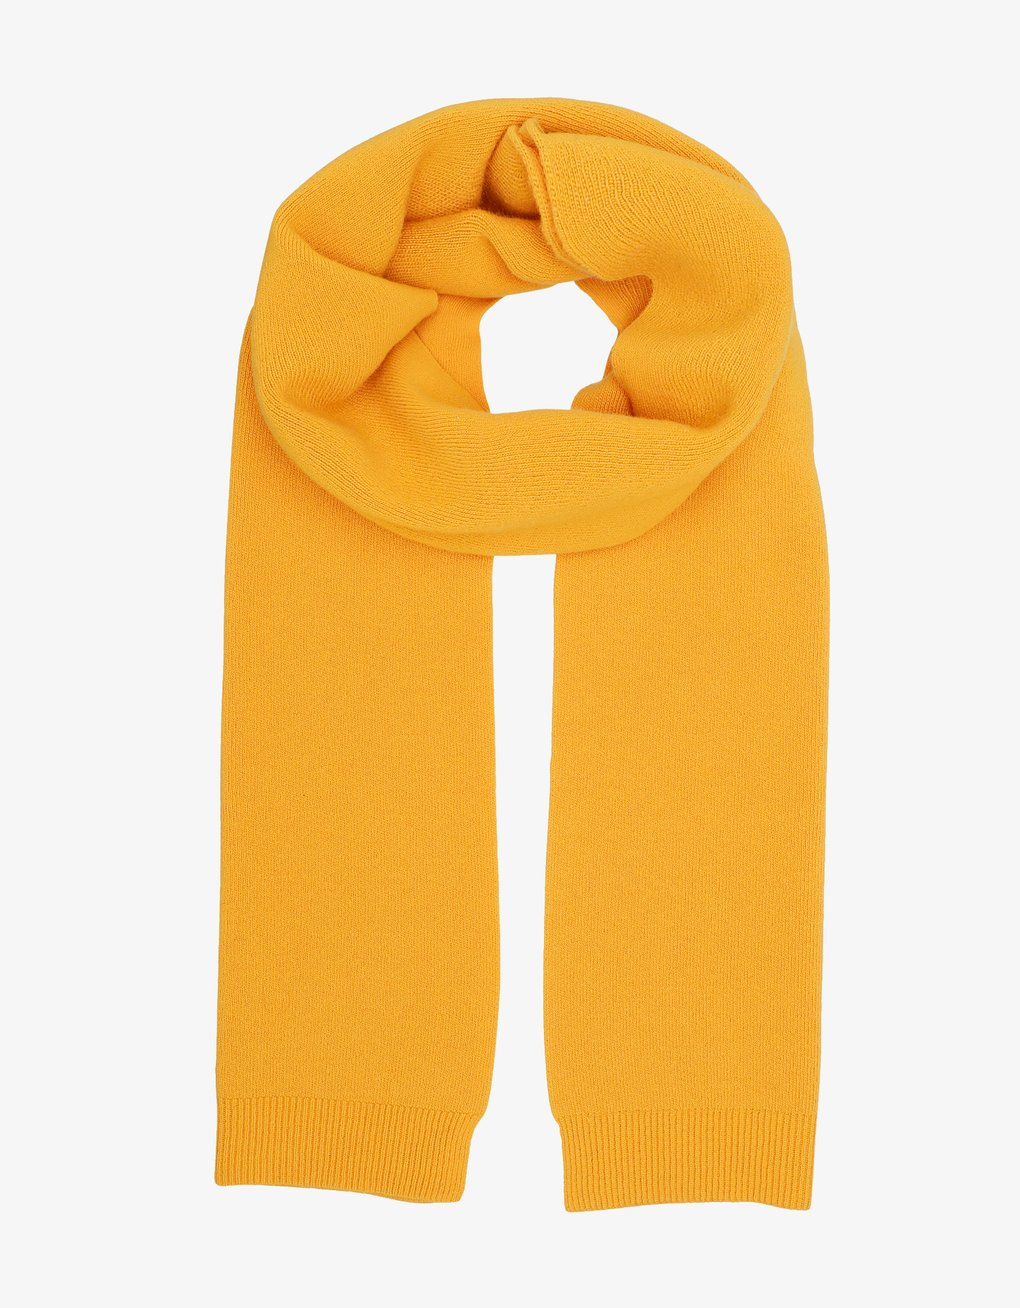 Merino Wool Scarf - Burned Yellow